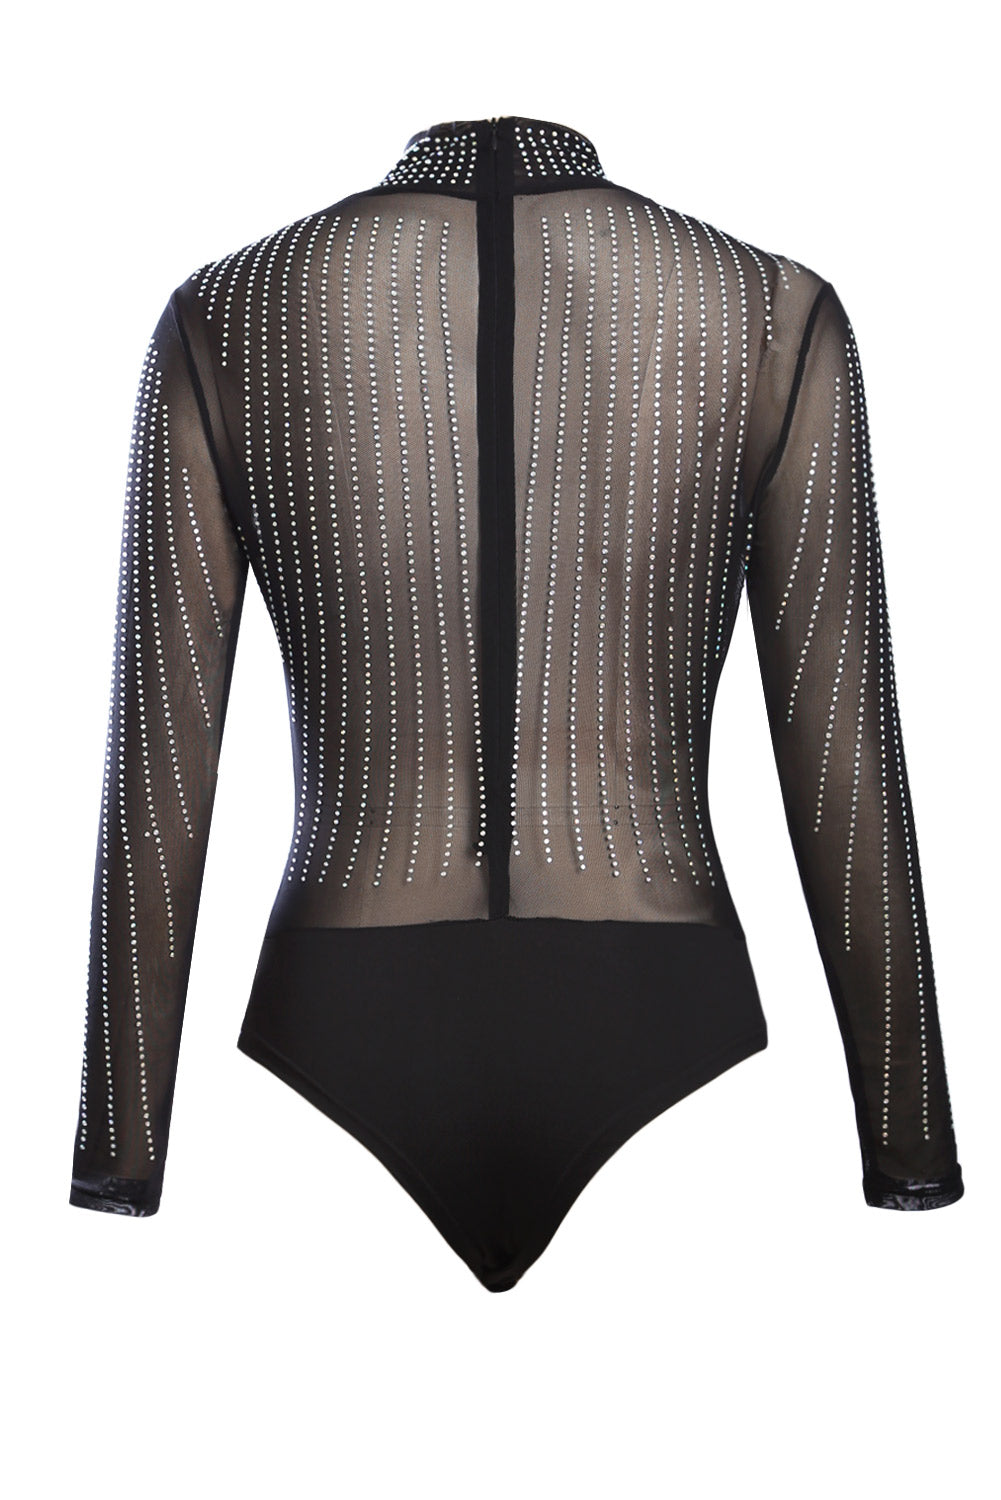 Black Iridescent Rhinestone Studded Mock Neck Long Sleeves Bodysuit